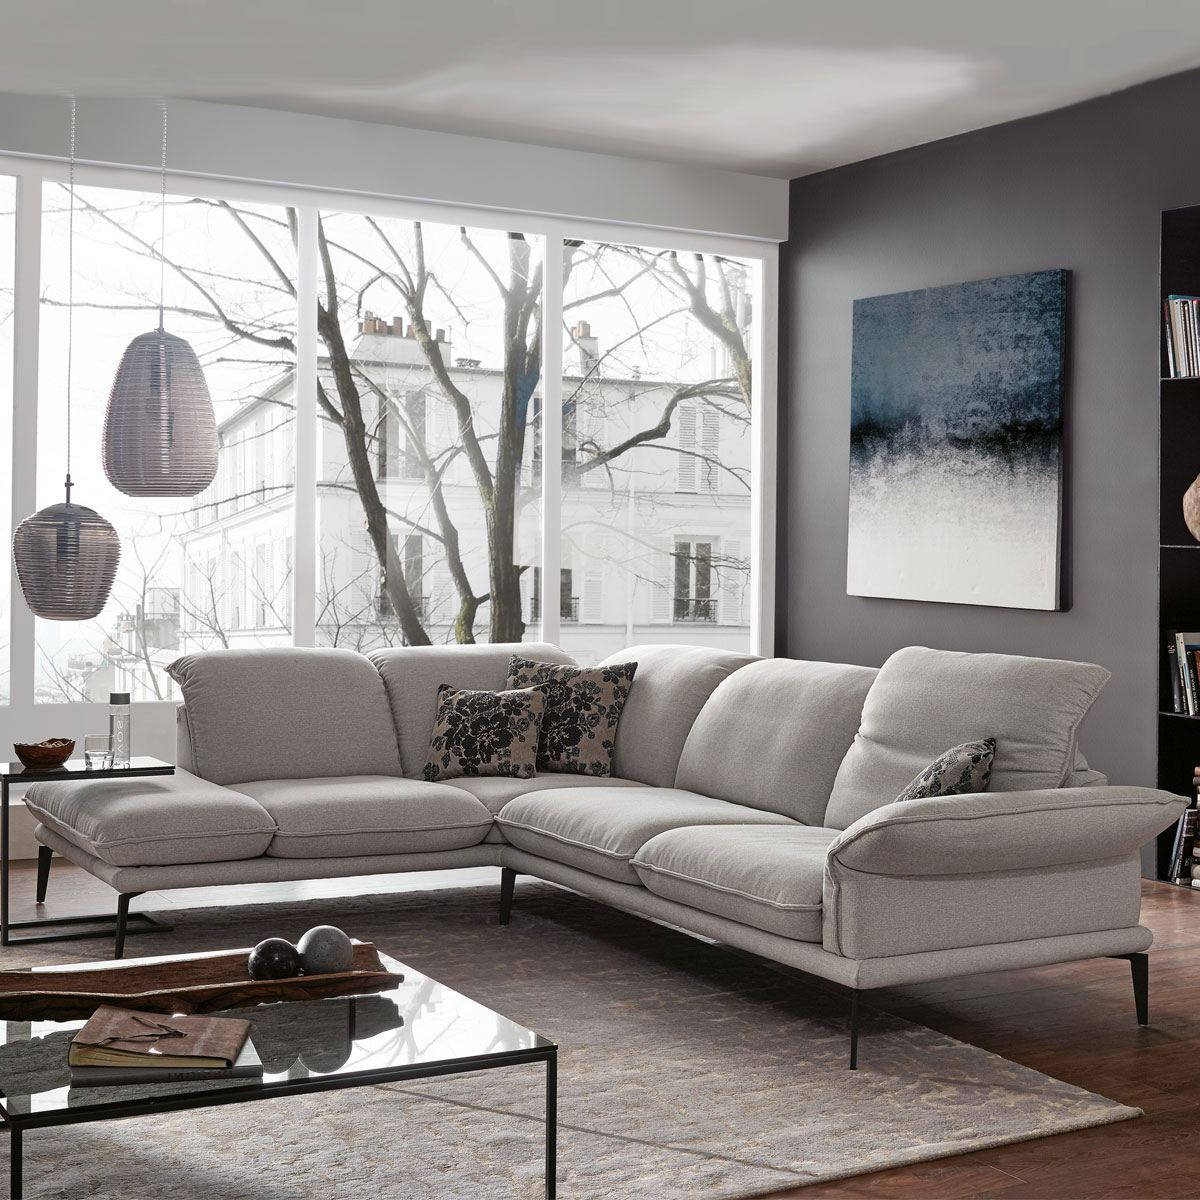 w schillig ecksofa sherry 24600 in l form mit. Black Bedroom Furniture Sets. Home Design Ideas